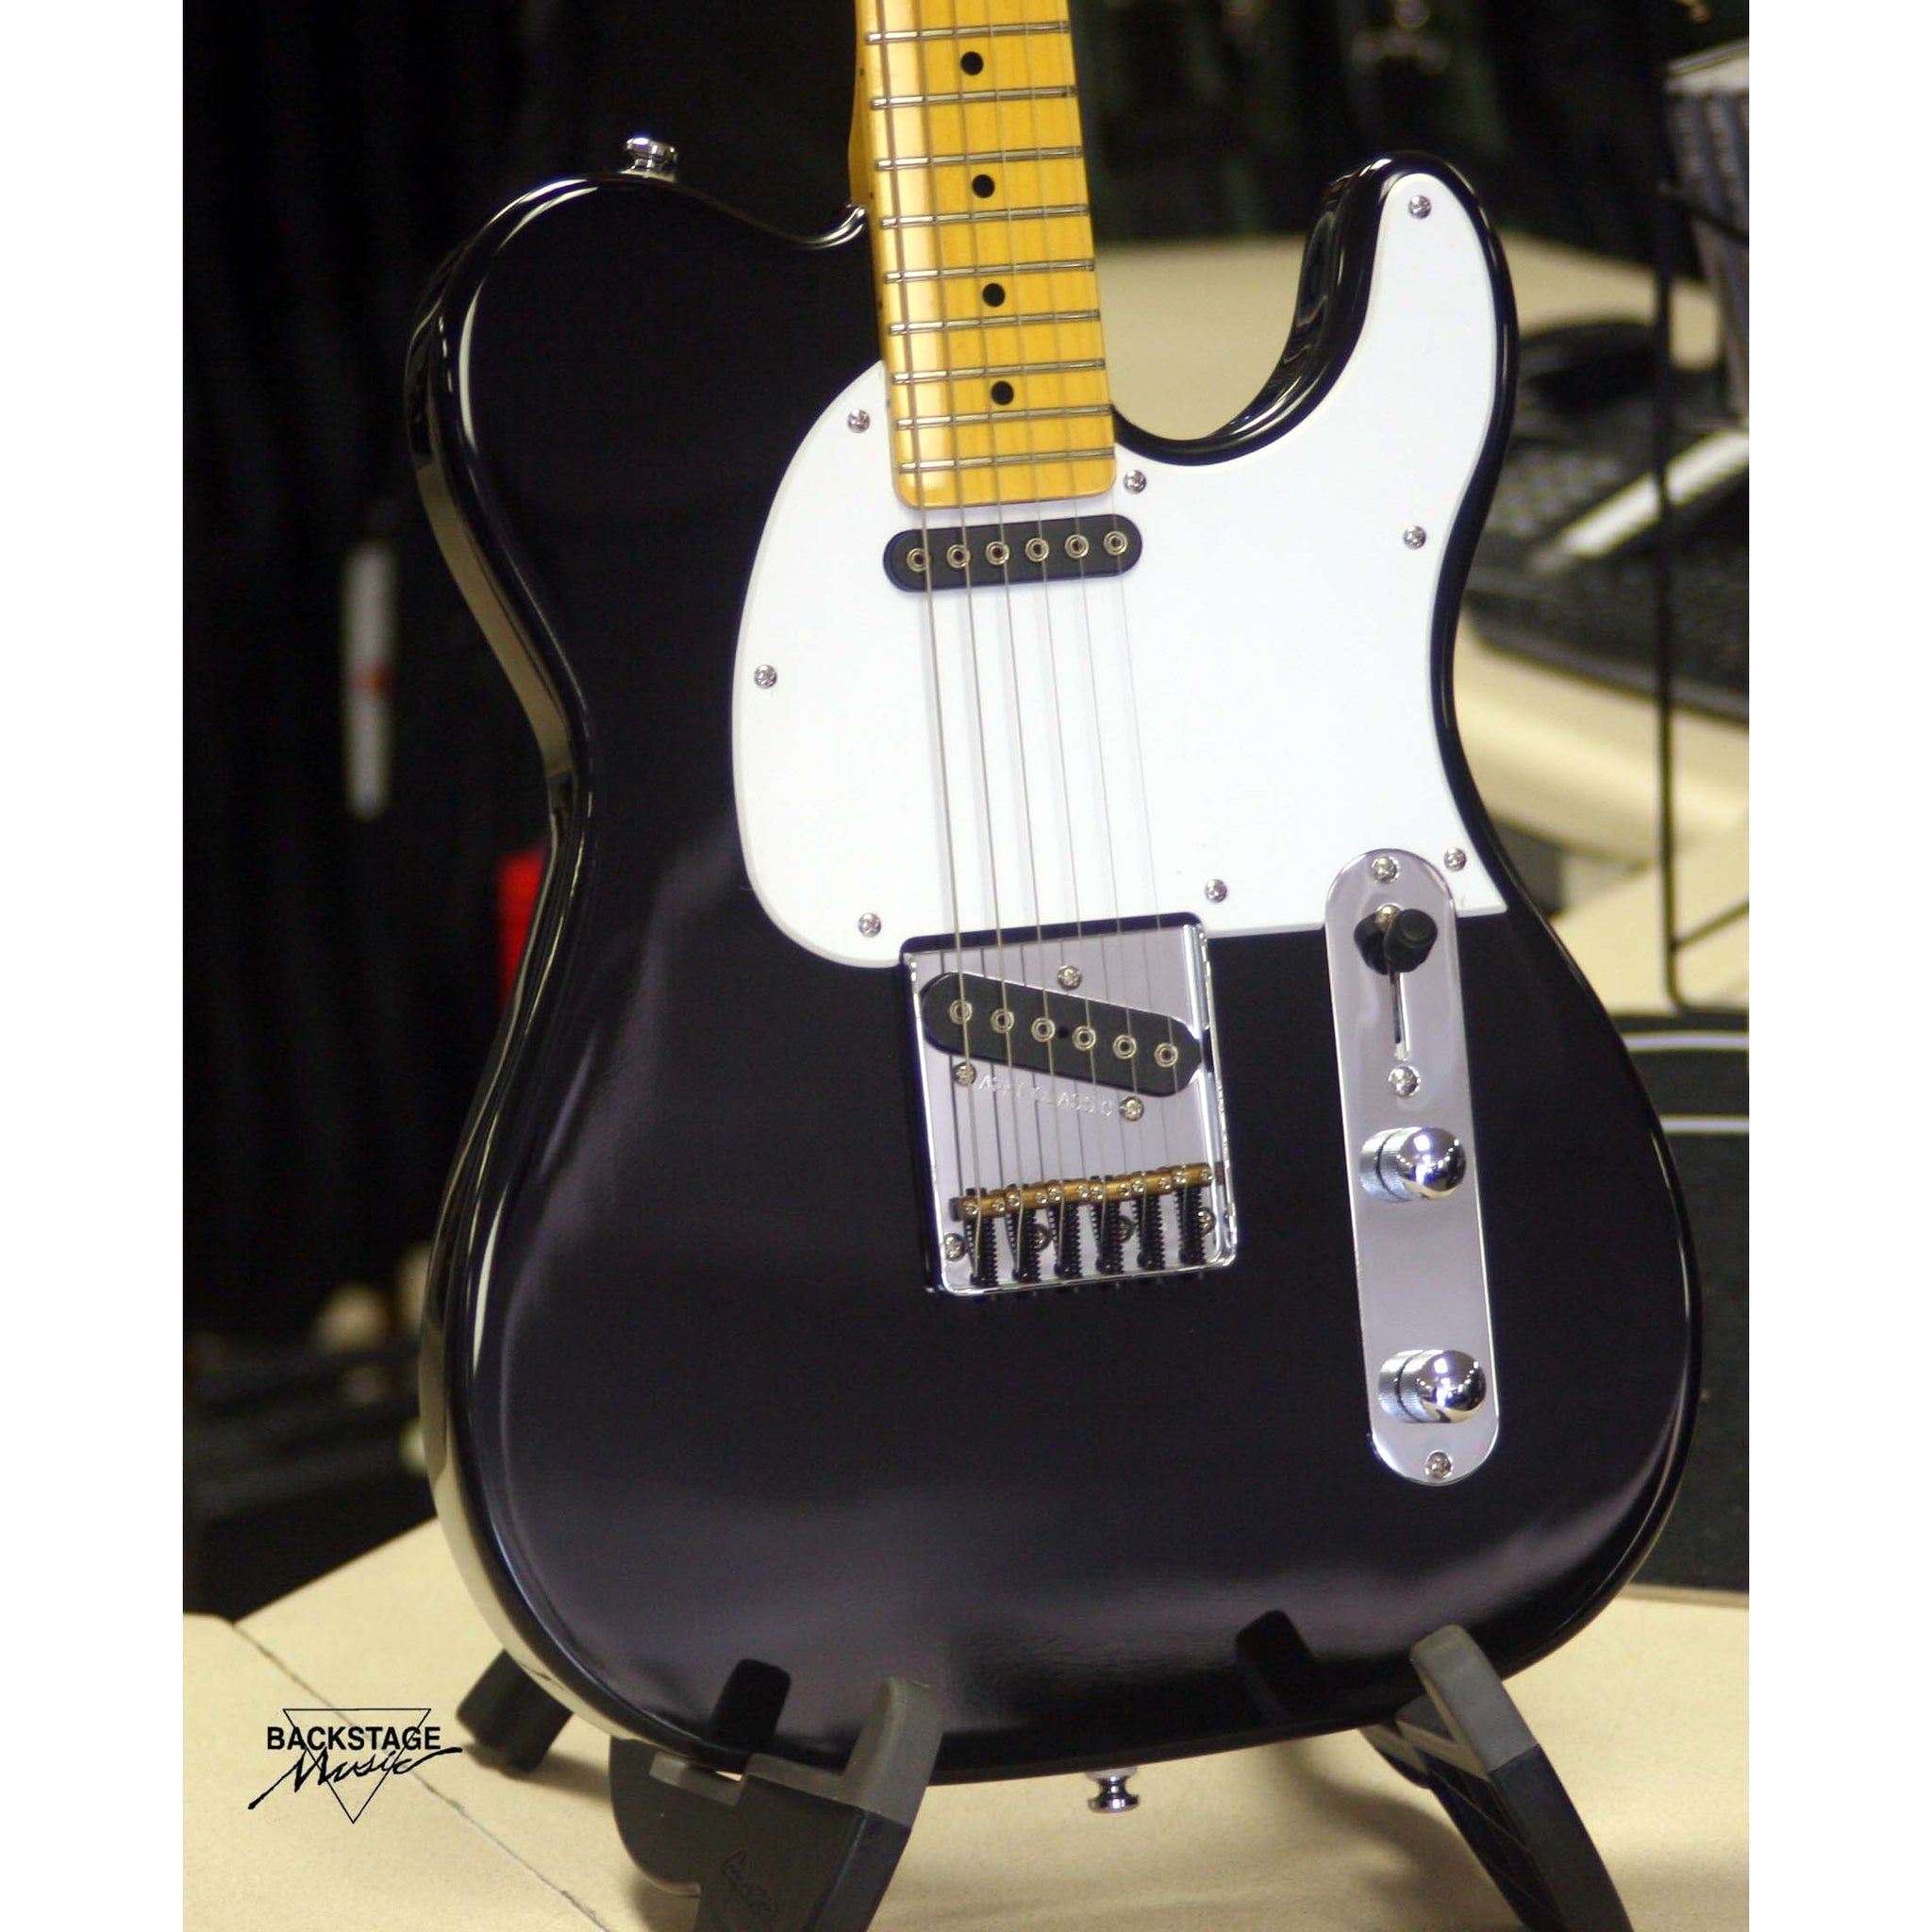 G&L Tribute ASAT Classic, Gloss Black, White Pickguard, SN 1535 (NEW)